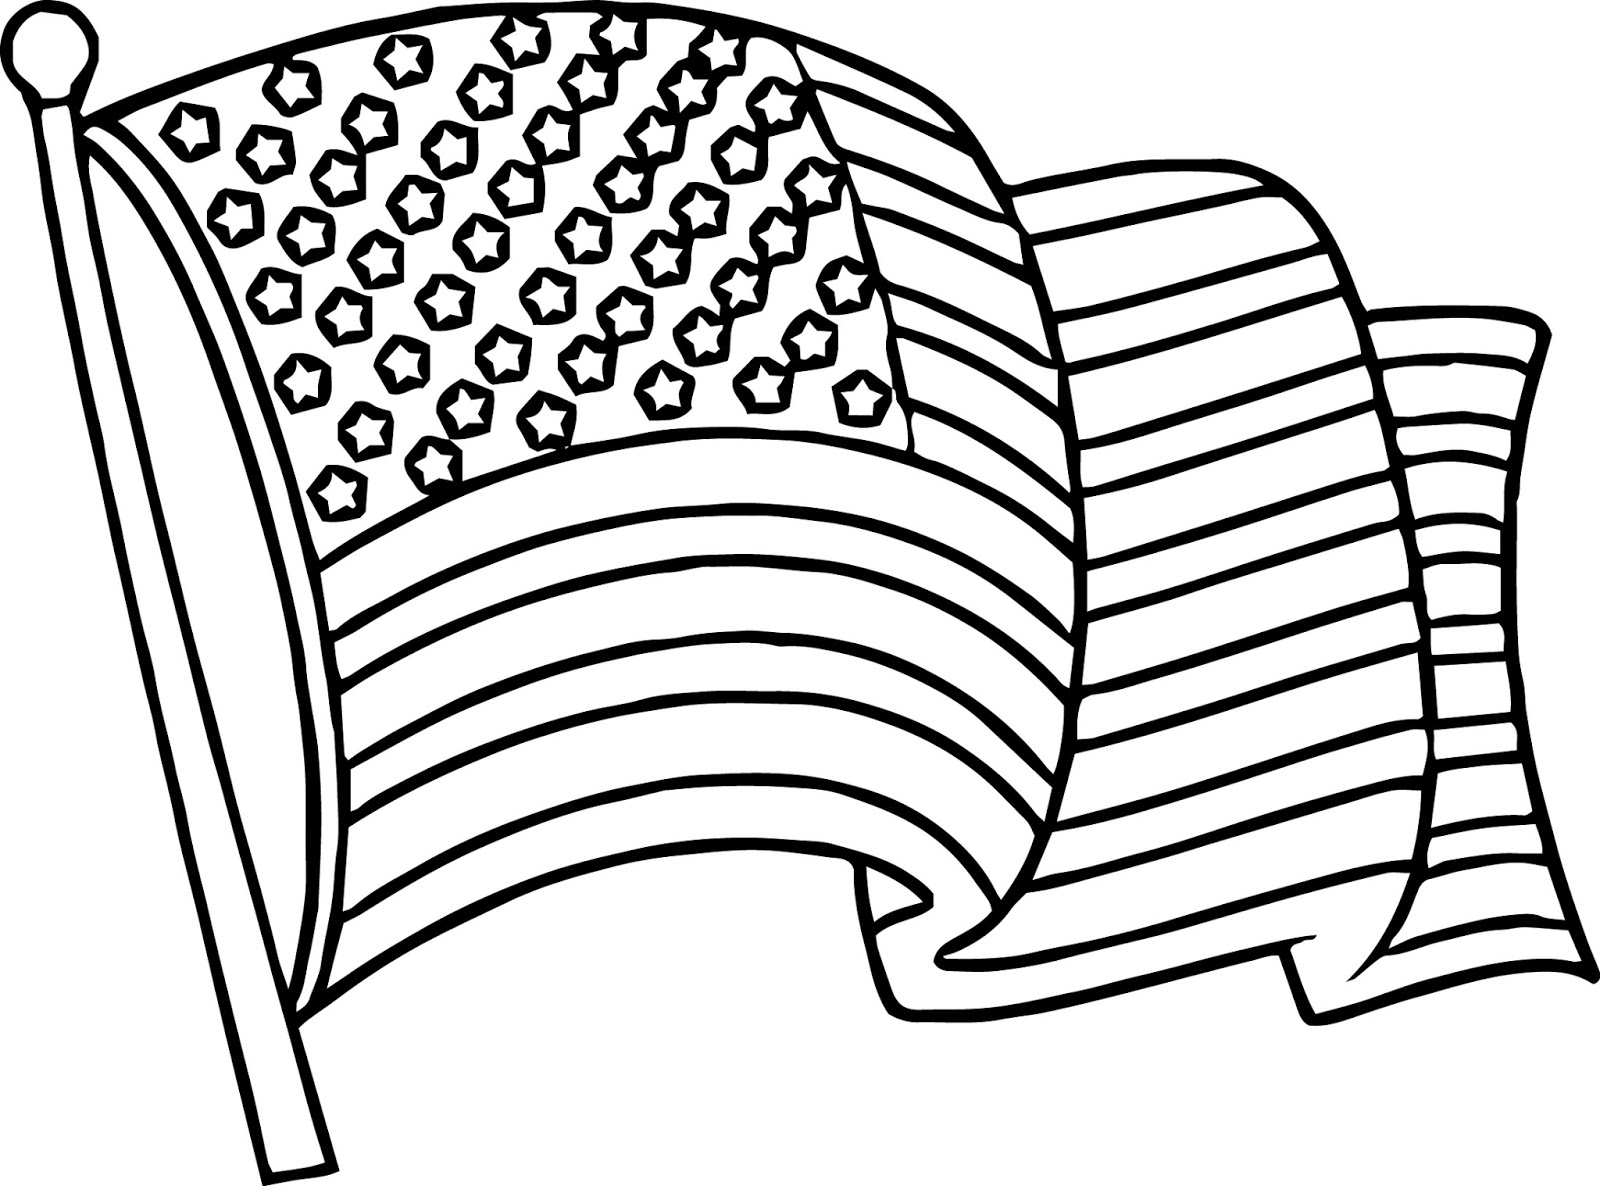 coloring pages flags american flag coloring pages you can print on the site flags coloring pages